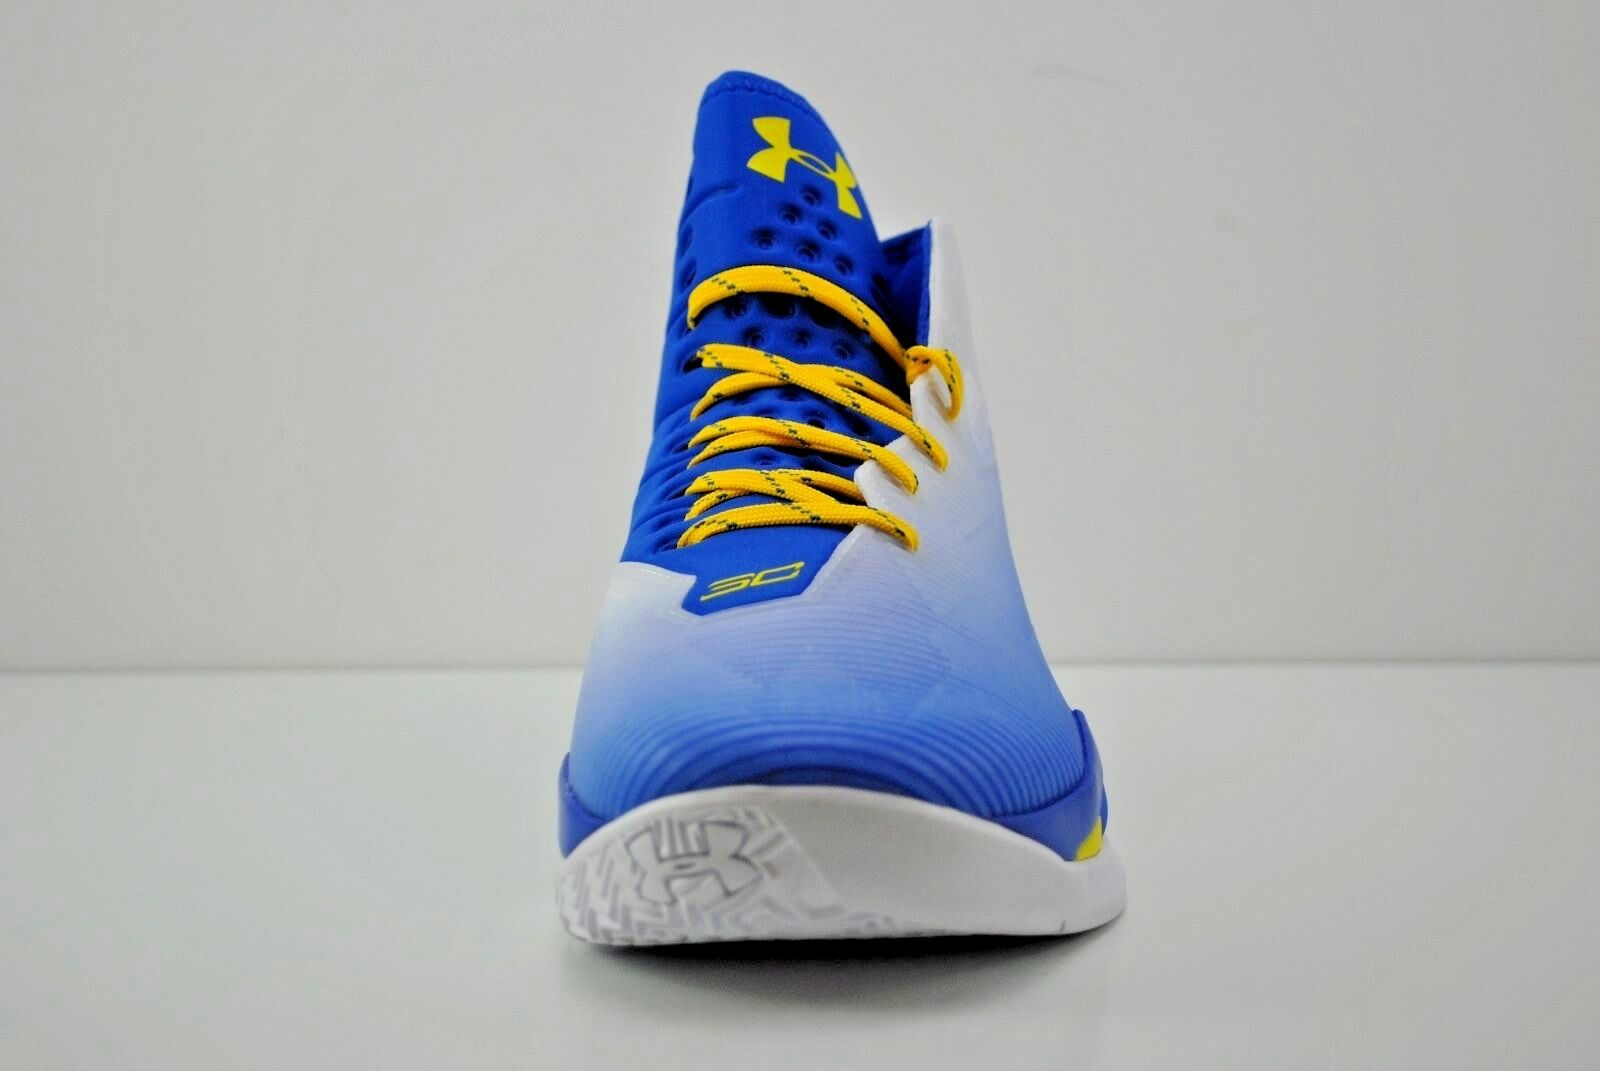 Under Armour UA Curry 2.5 Basketball Yellow Schuhes Größe 12 Blau Yellow Basketball WEISS 1274425-103 c4b661